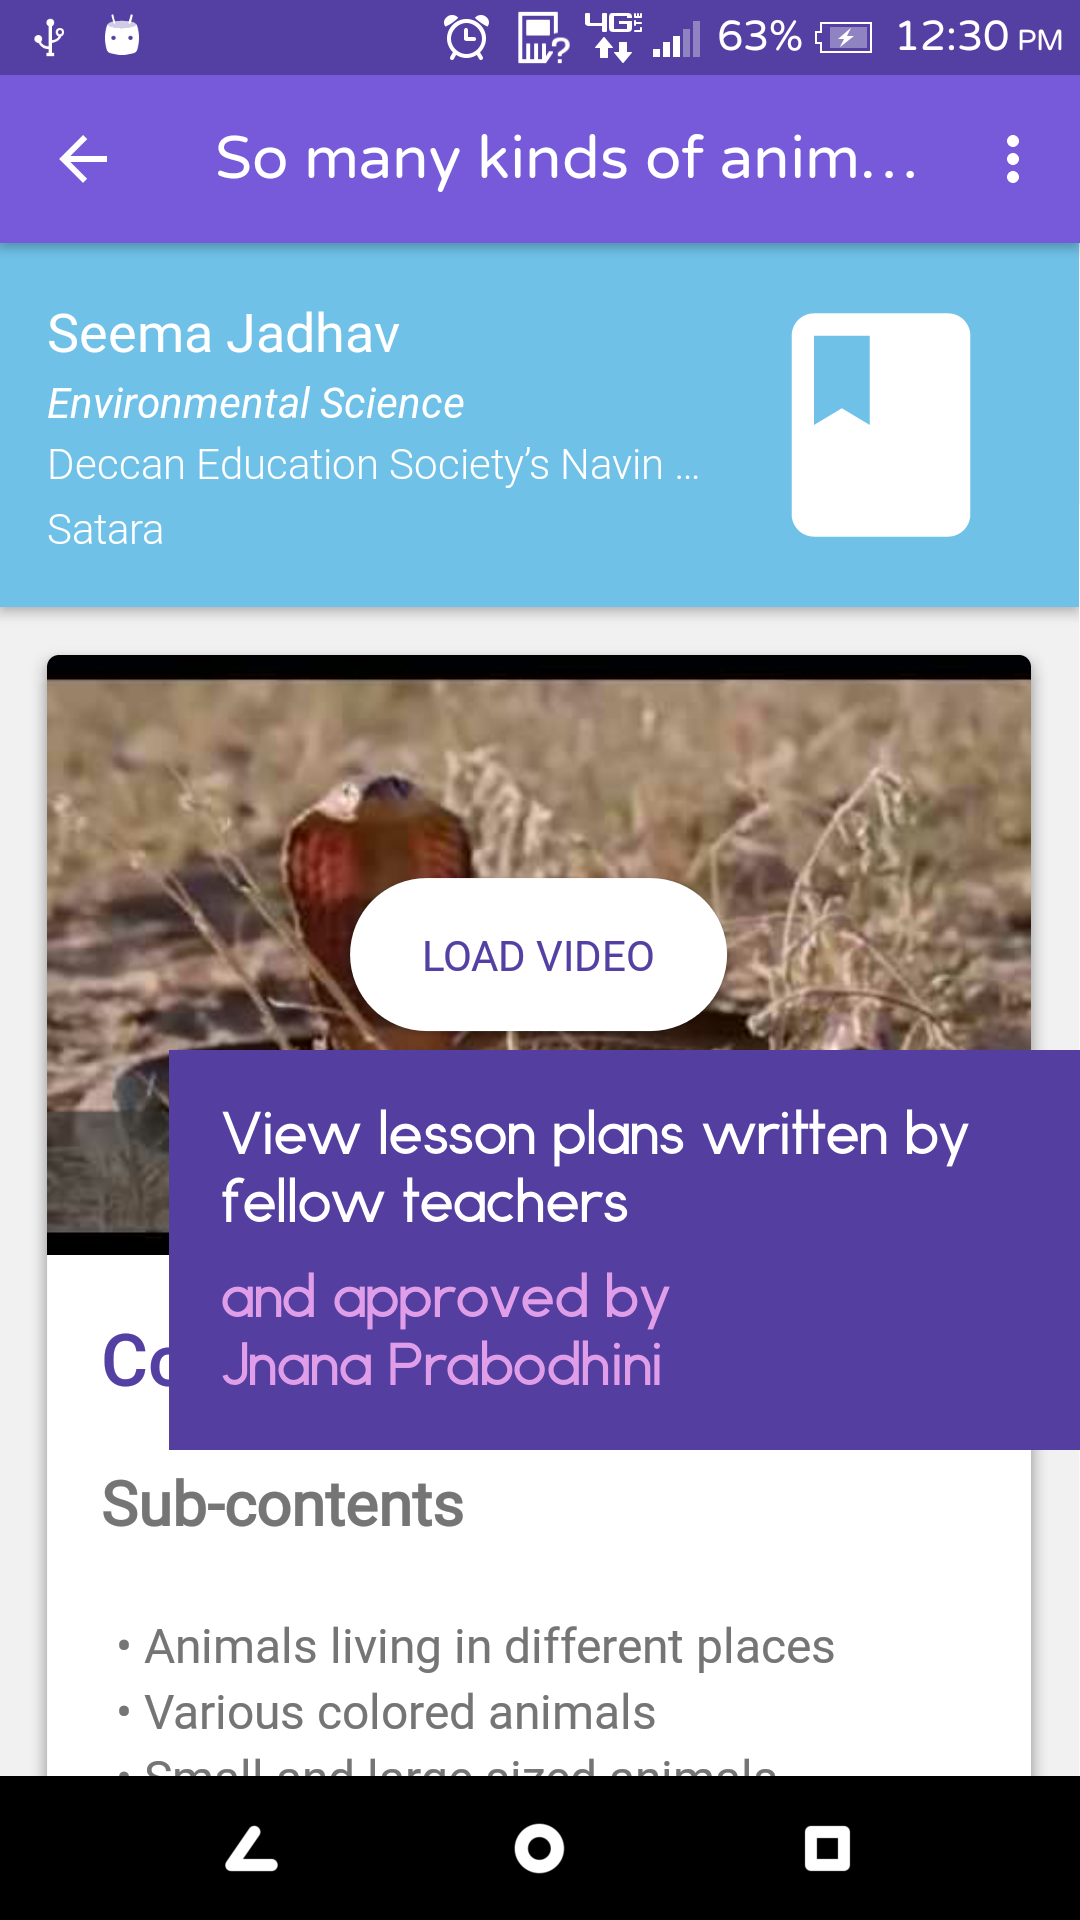 Find lesson plans approved by Jnana Prabodhini